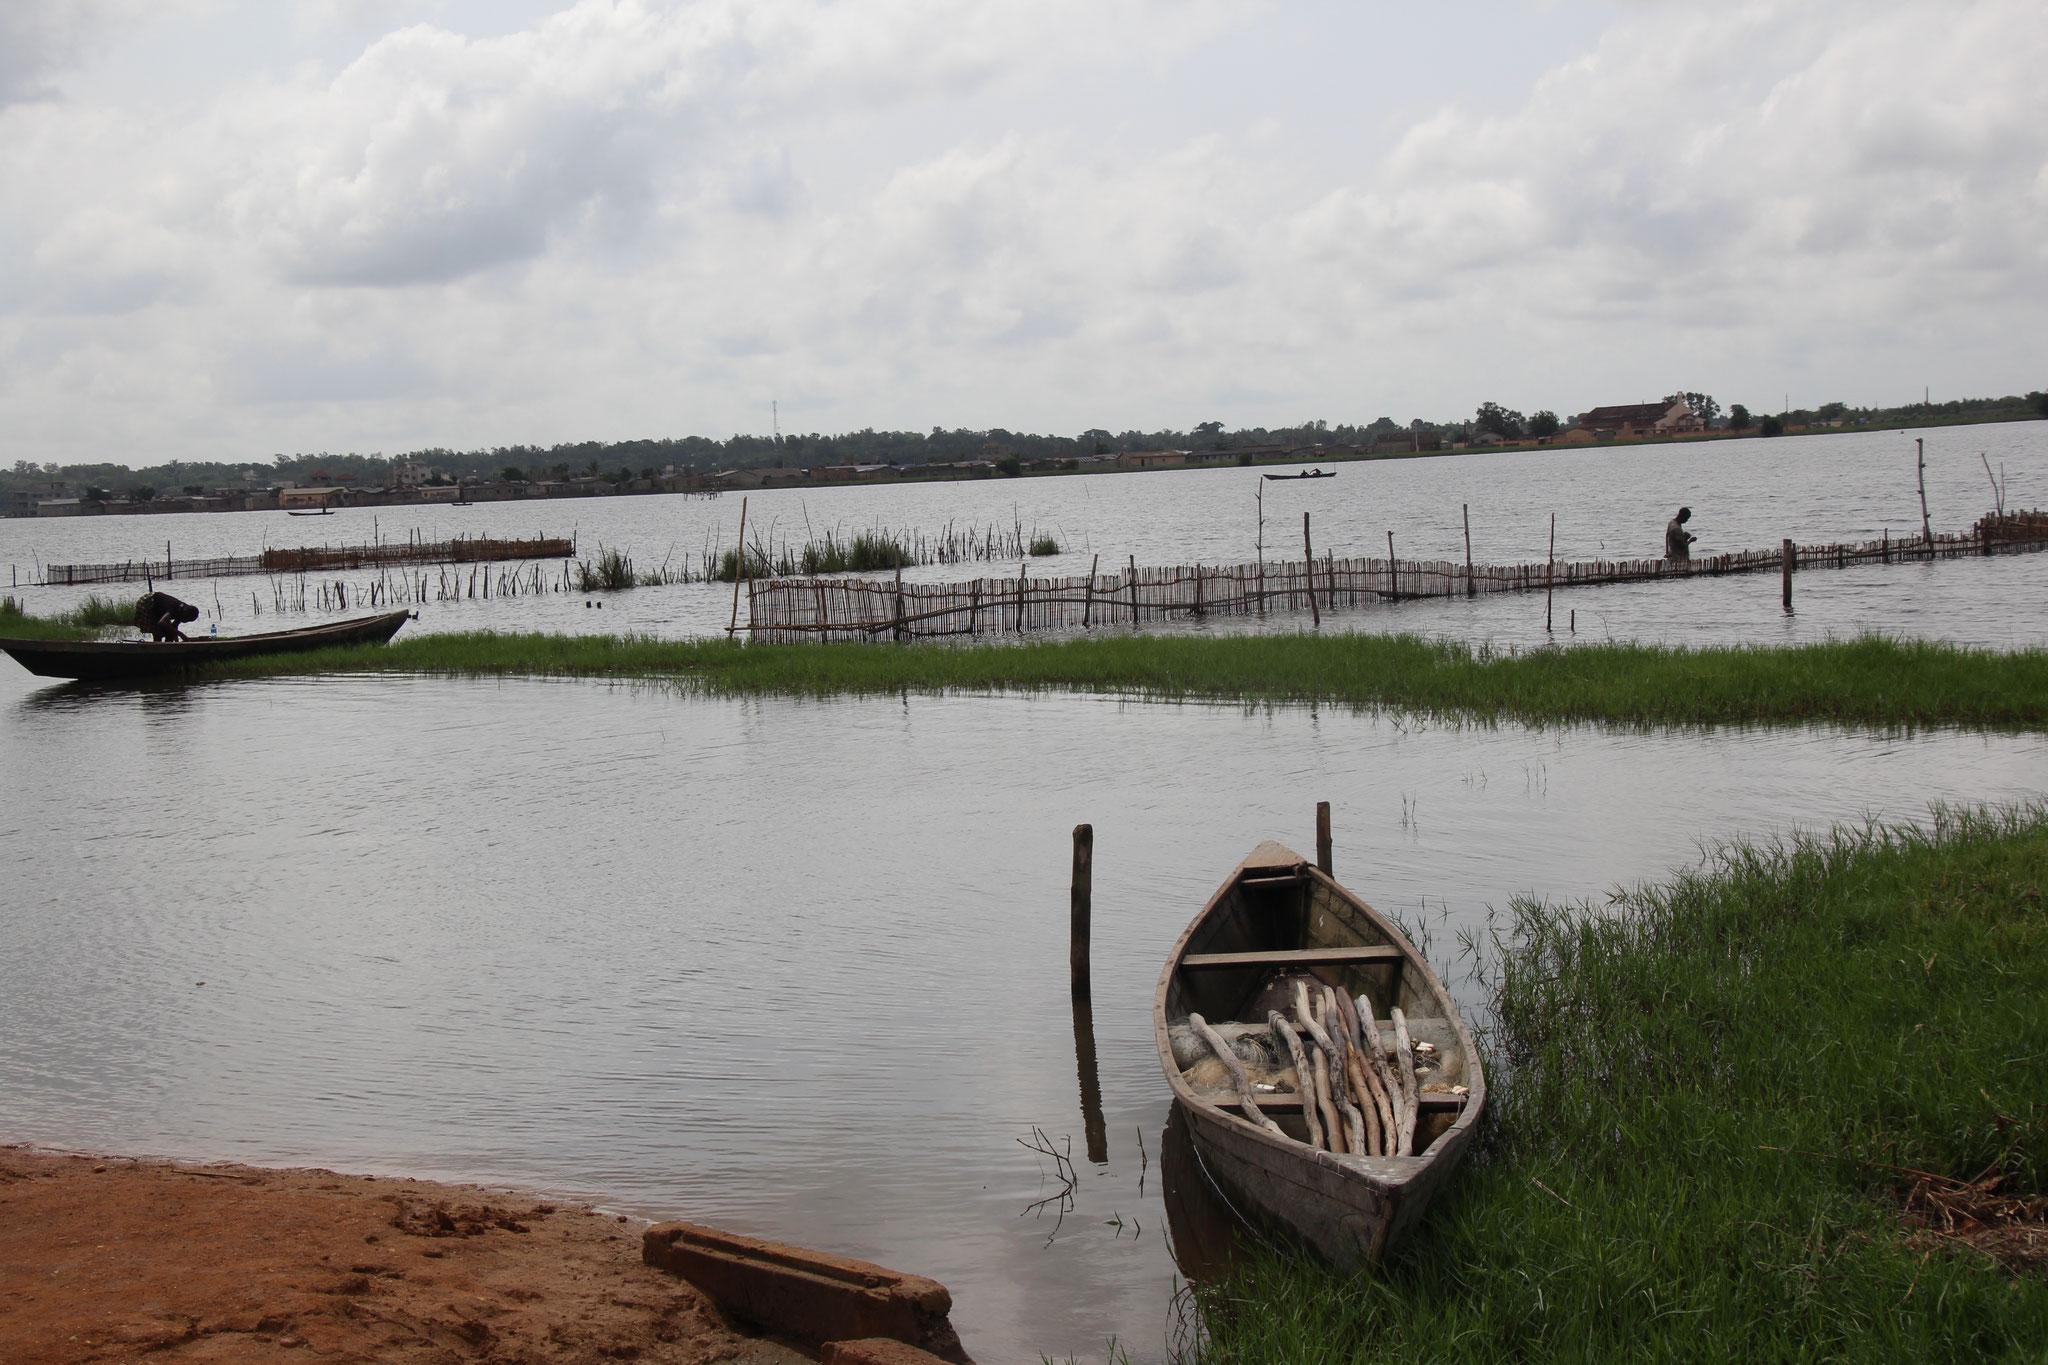 15. Landschaft in Come Benin.